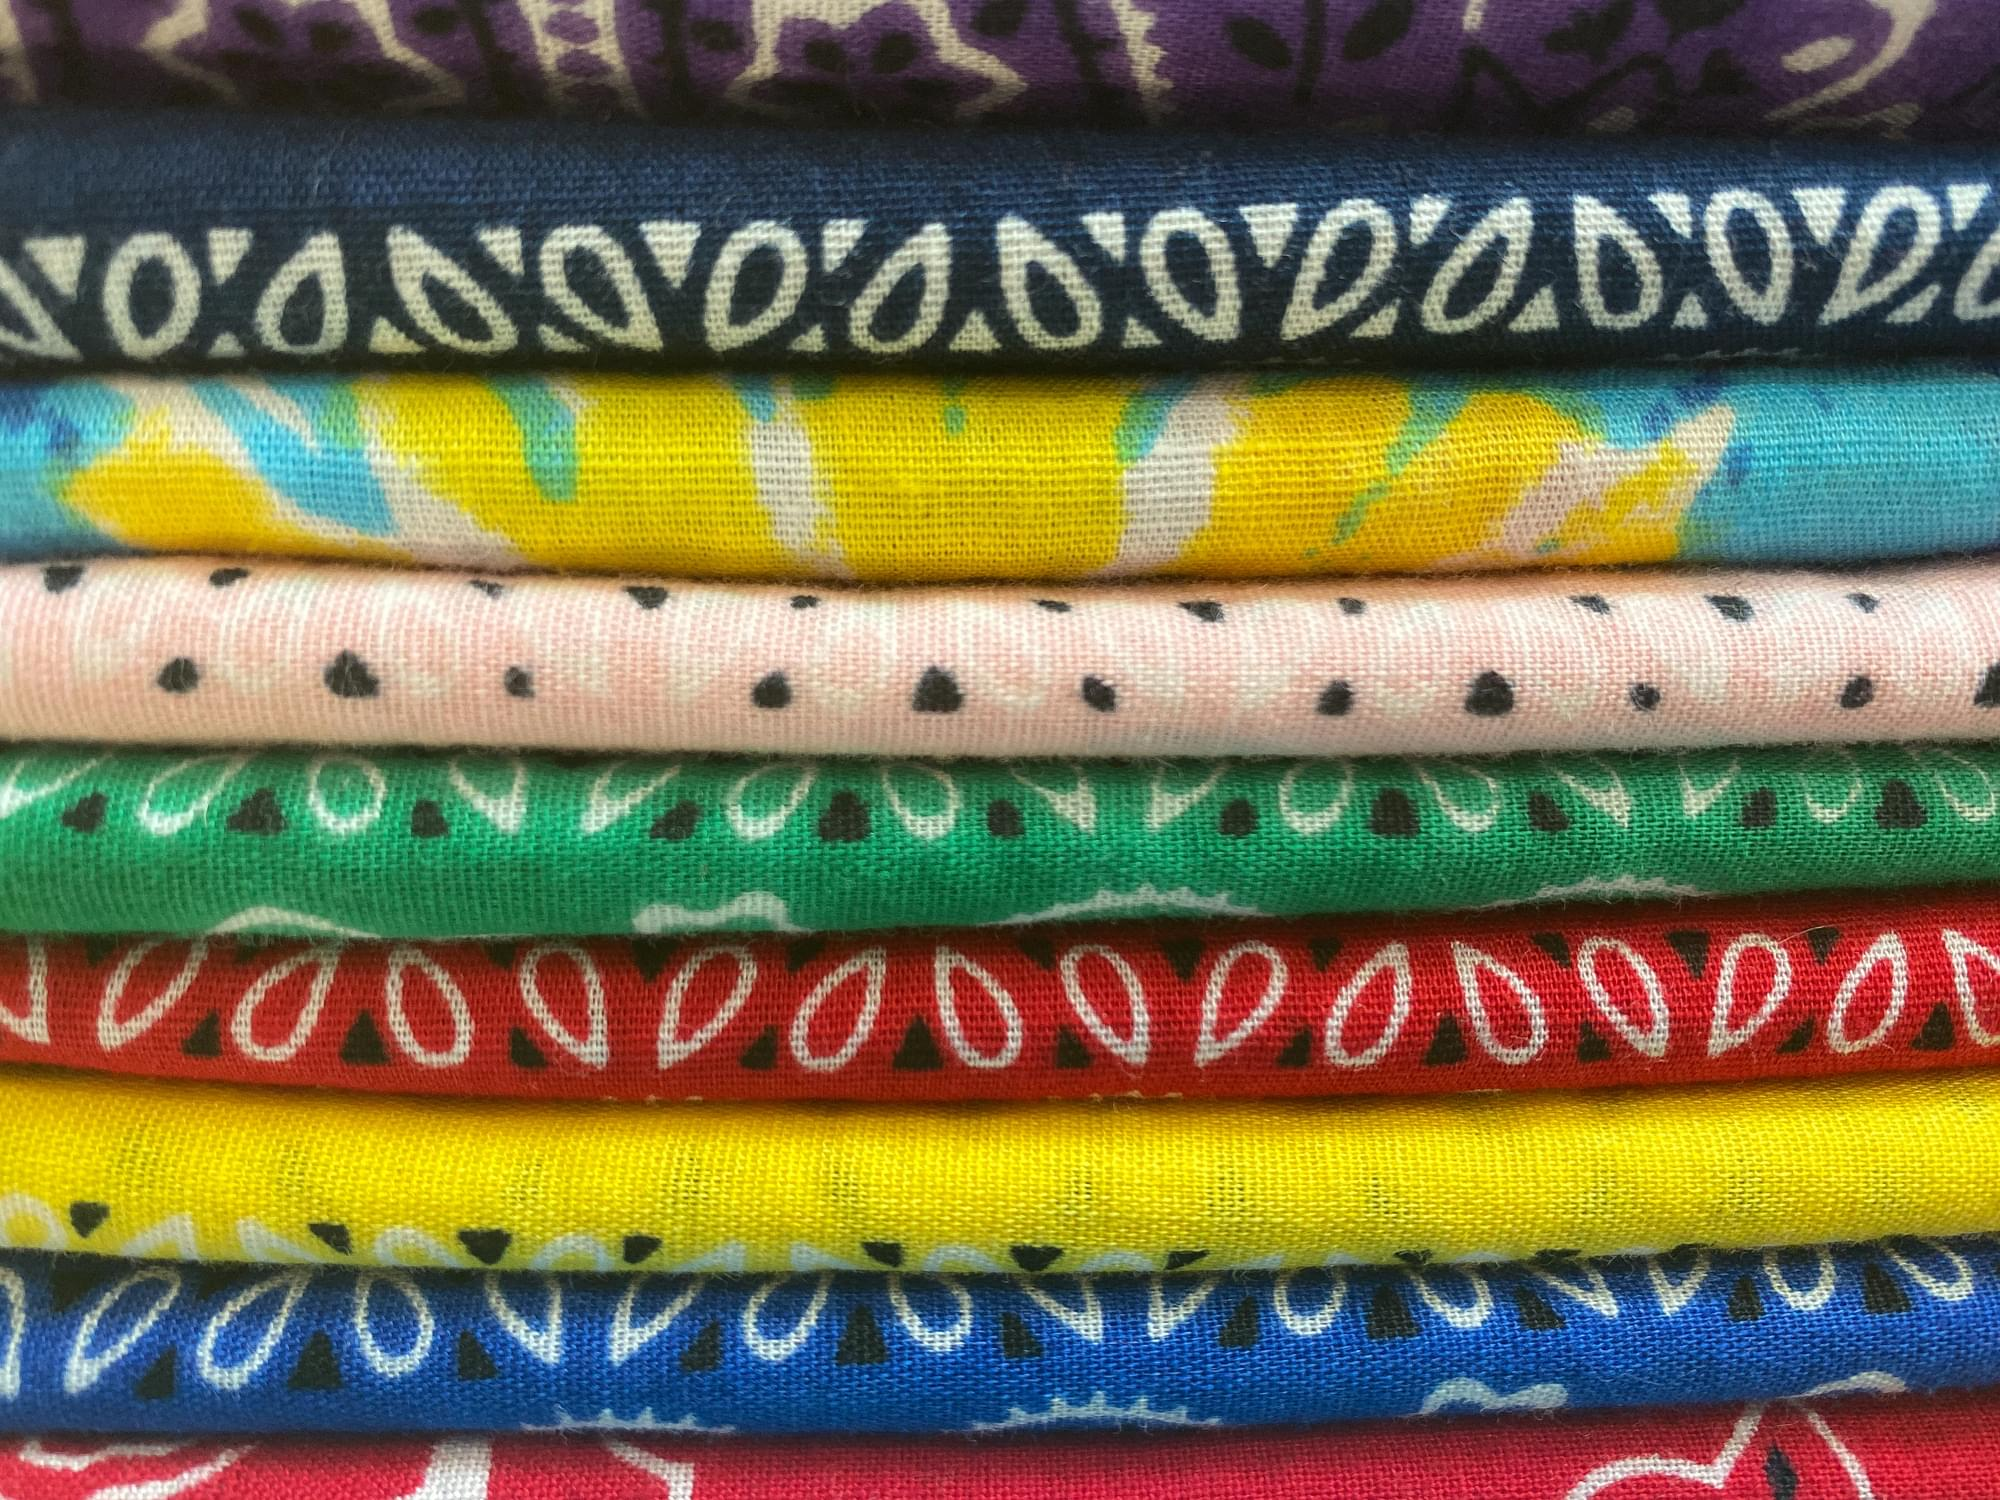 Stack of Colorful Cotton Bandanas to Make Face Coverings